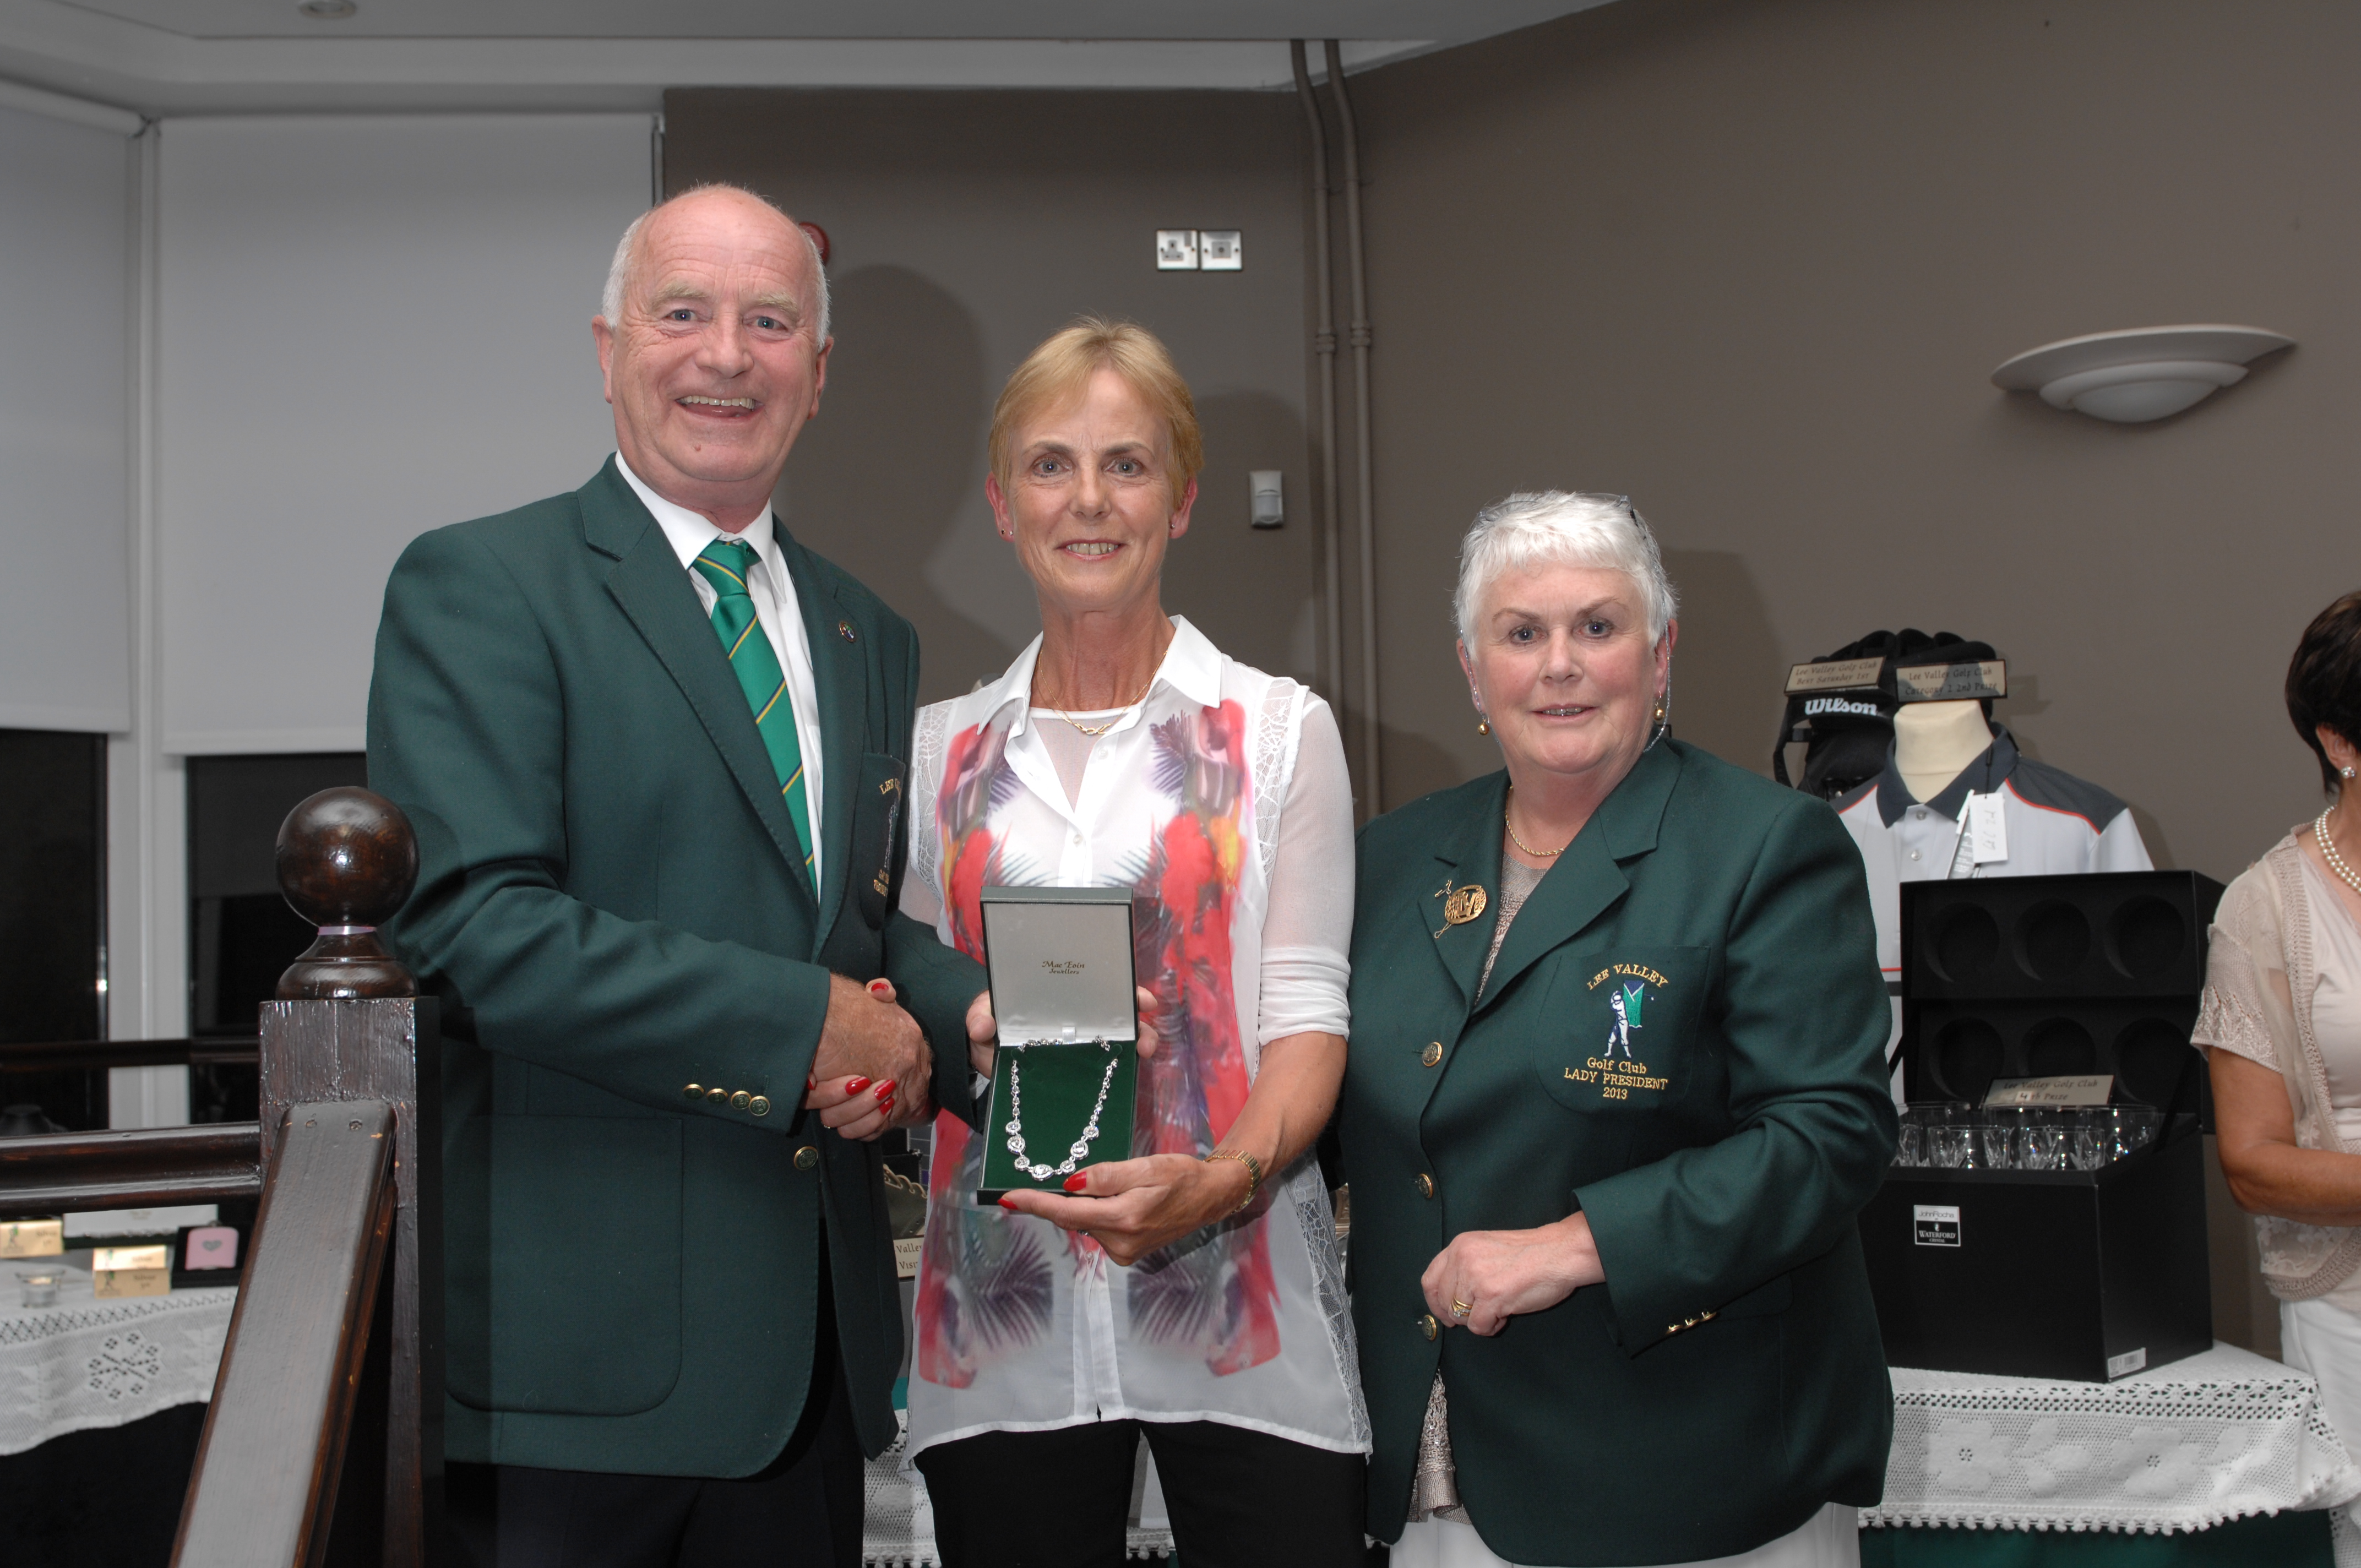 25 years at Lee Valley Golf & Country Club